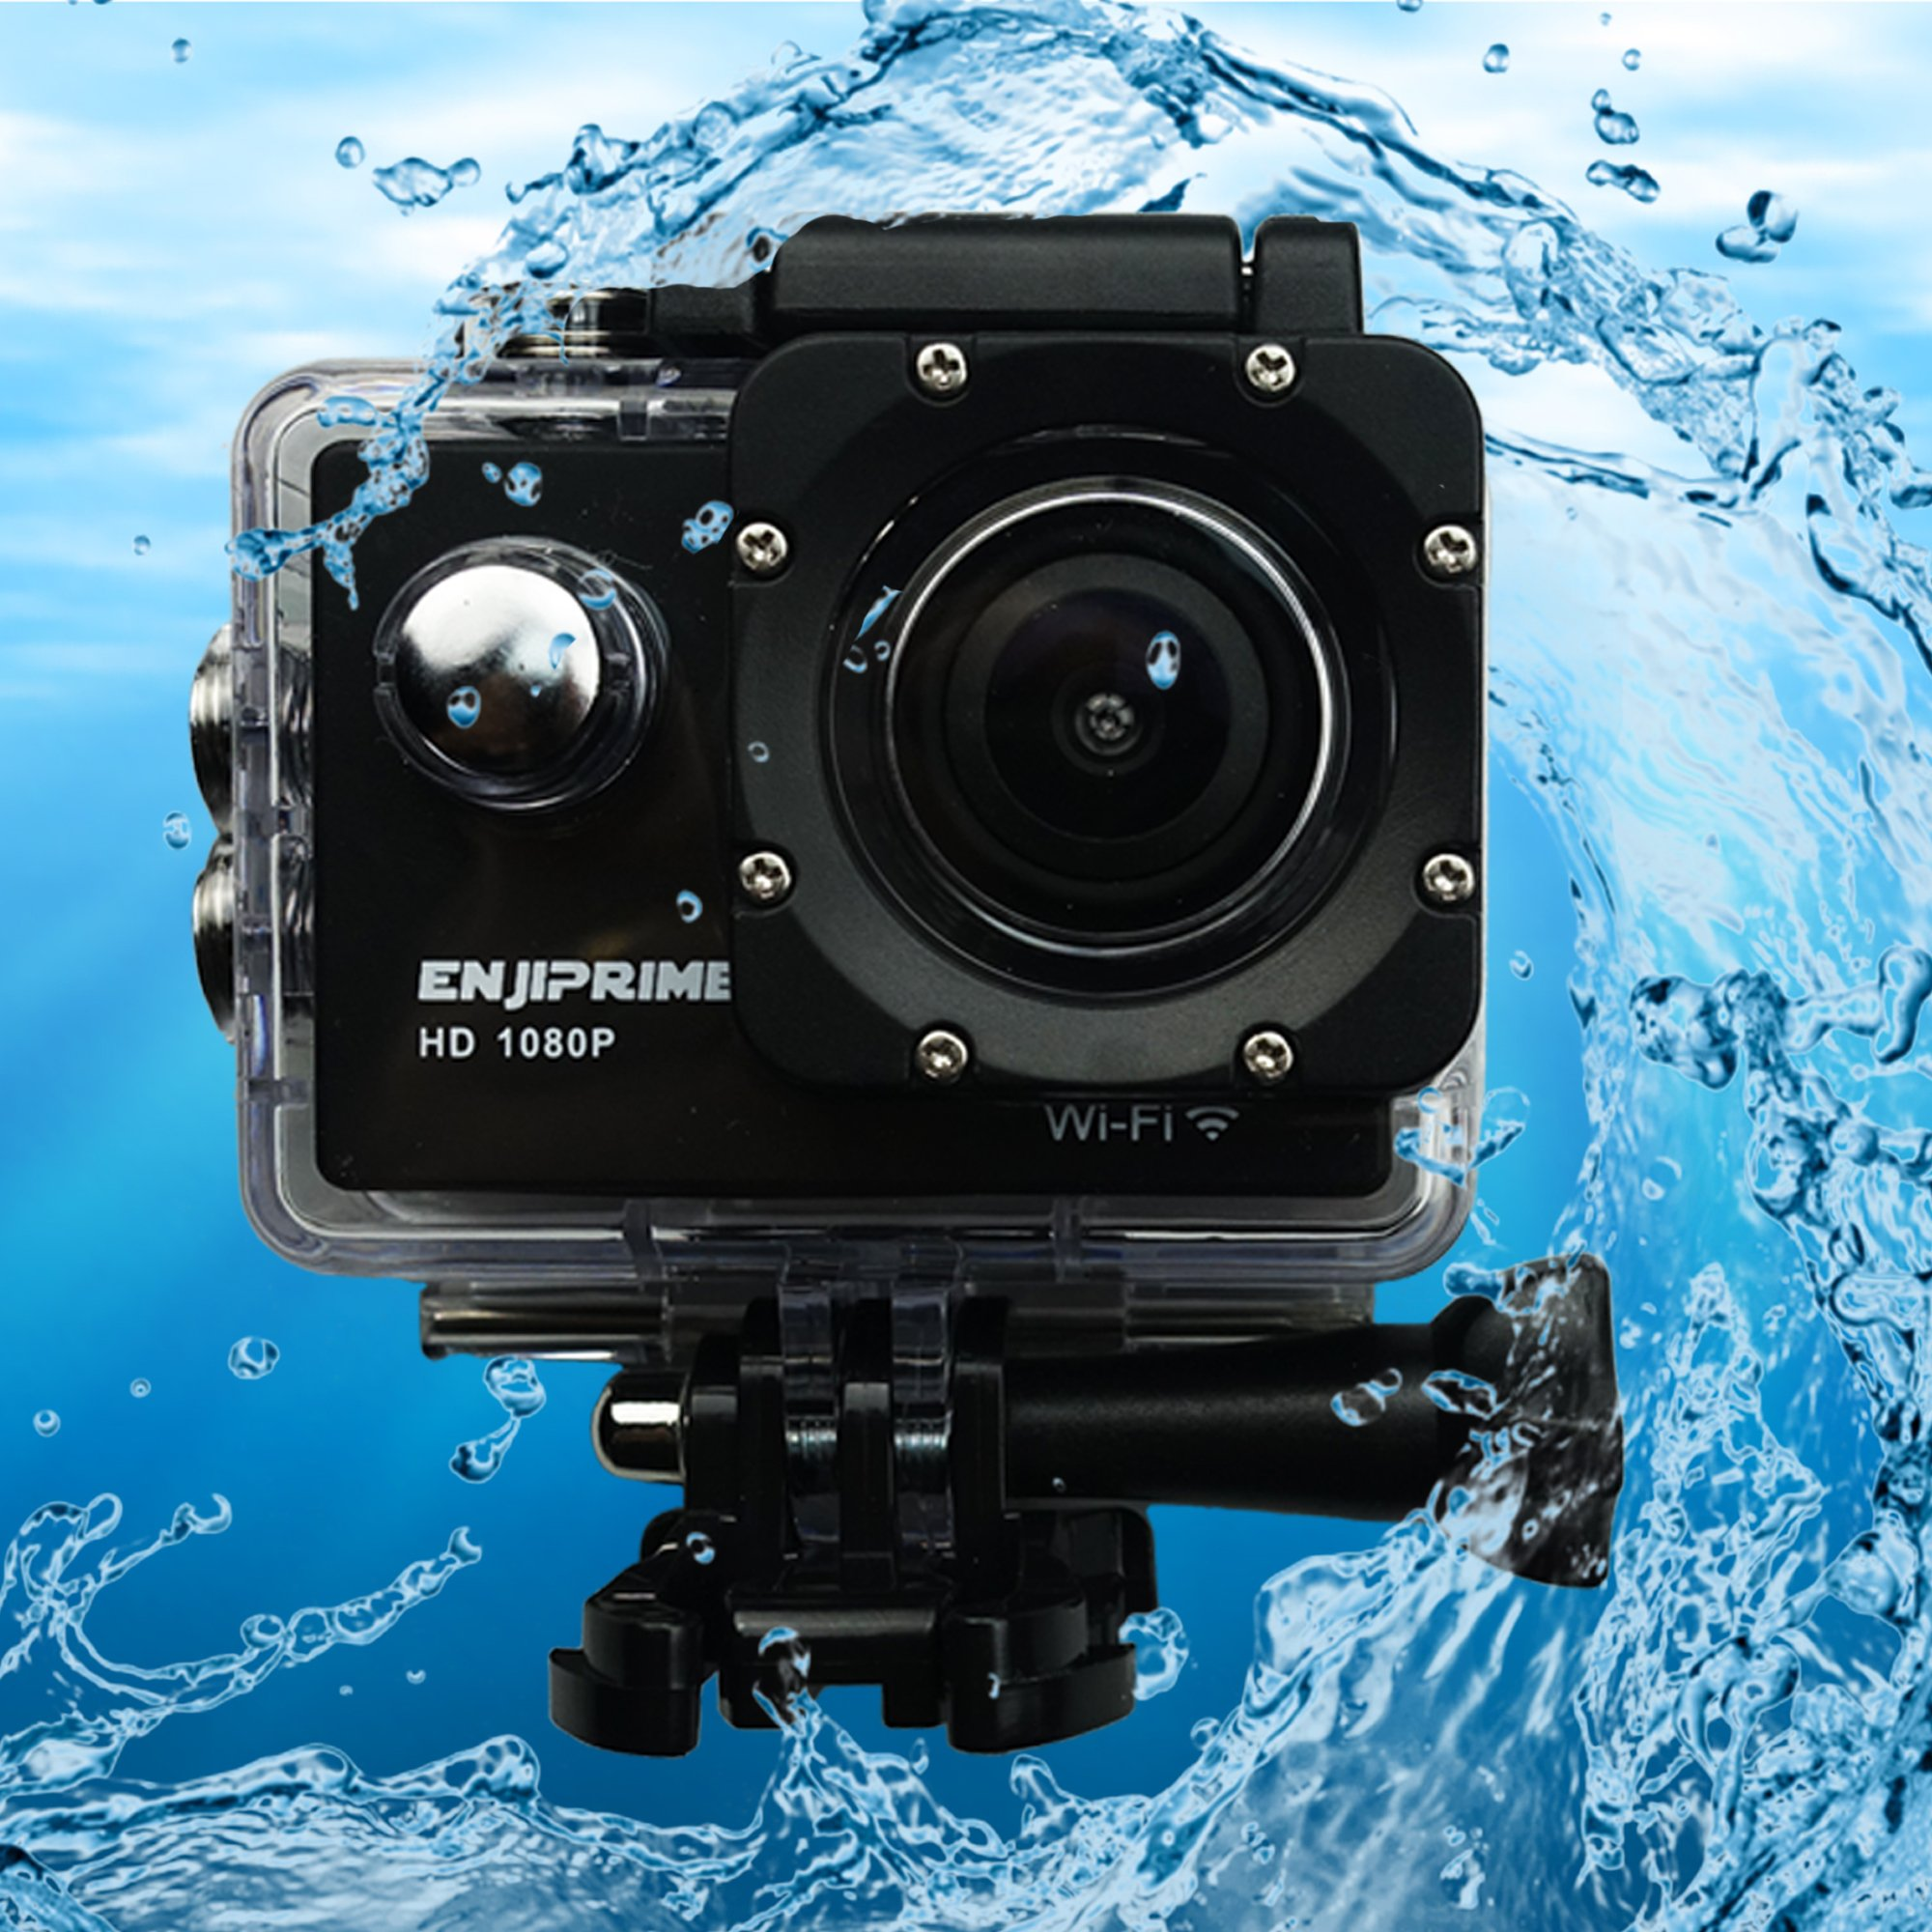 WIFI Mini Sports Action Camera - Ultra HD 1080P Waterproof Camcorder 2.0 Inch LCD Display 120 Degree Wide Angle Lens with Outdoor Mounting Accessories